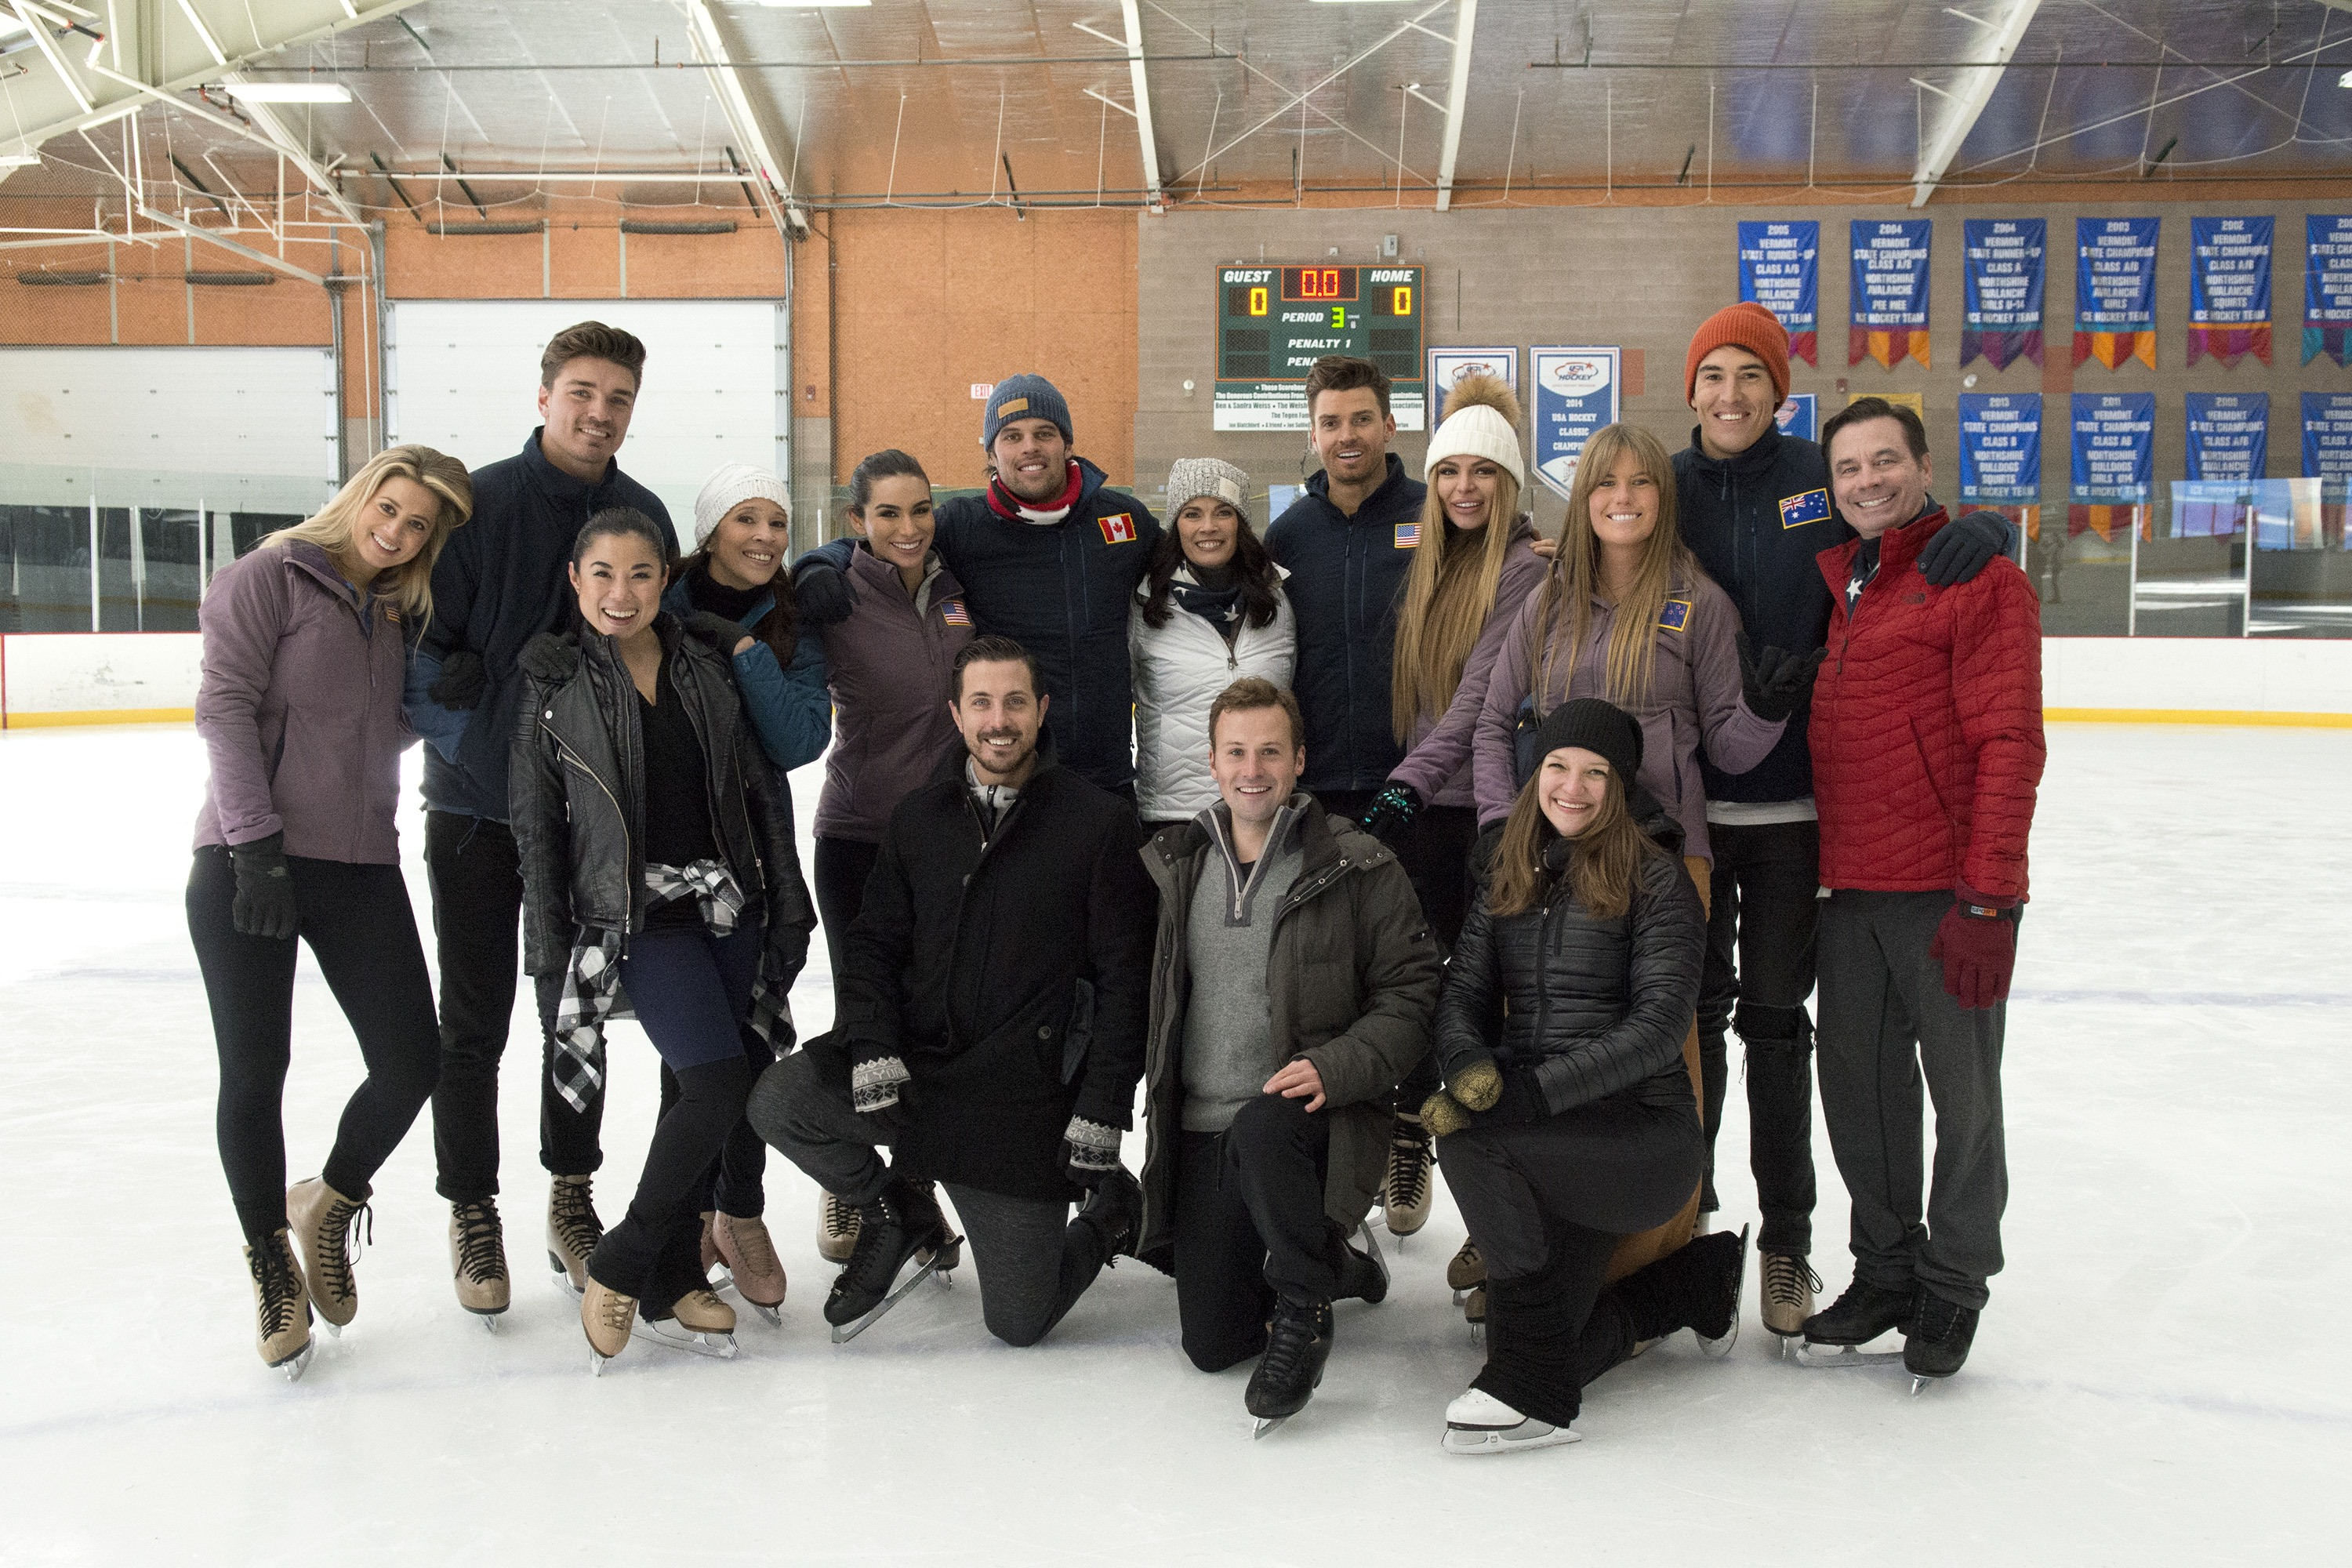 The cast of Bachelor Winter Games